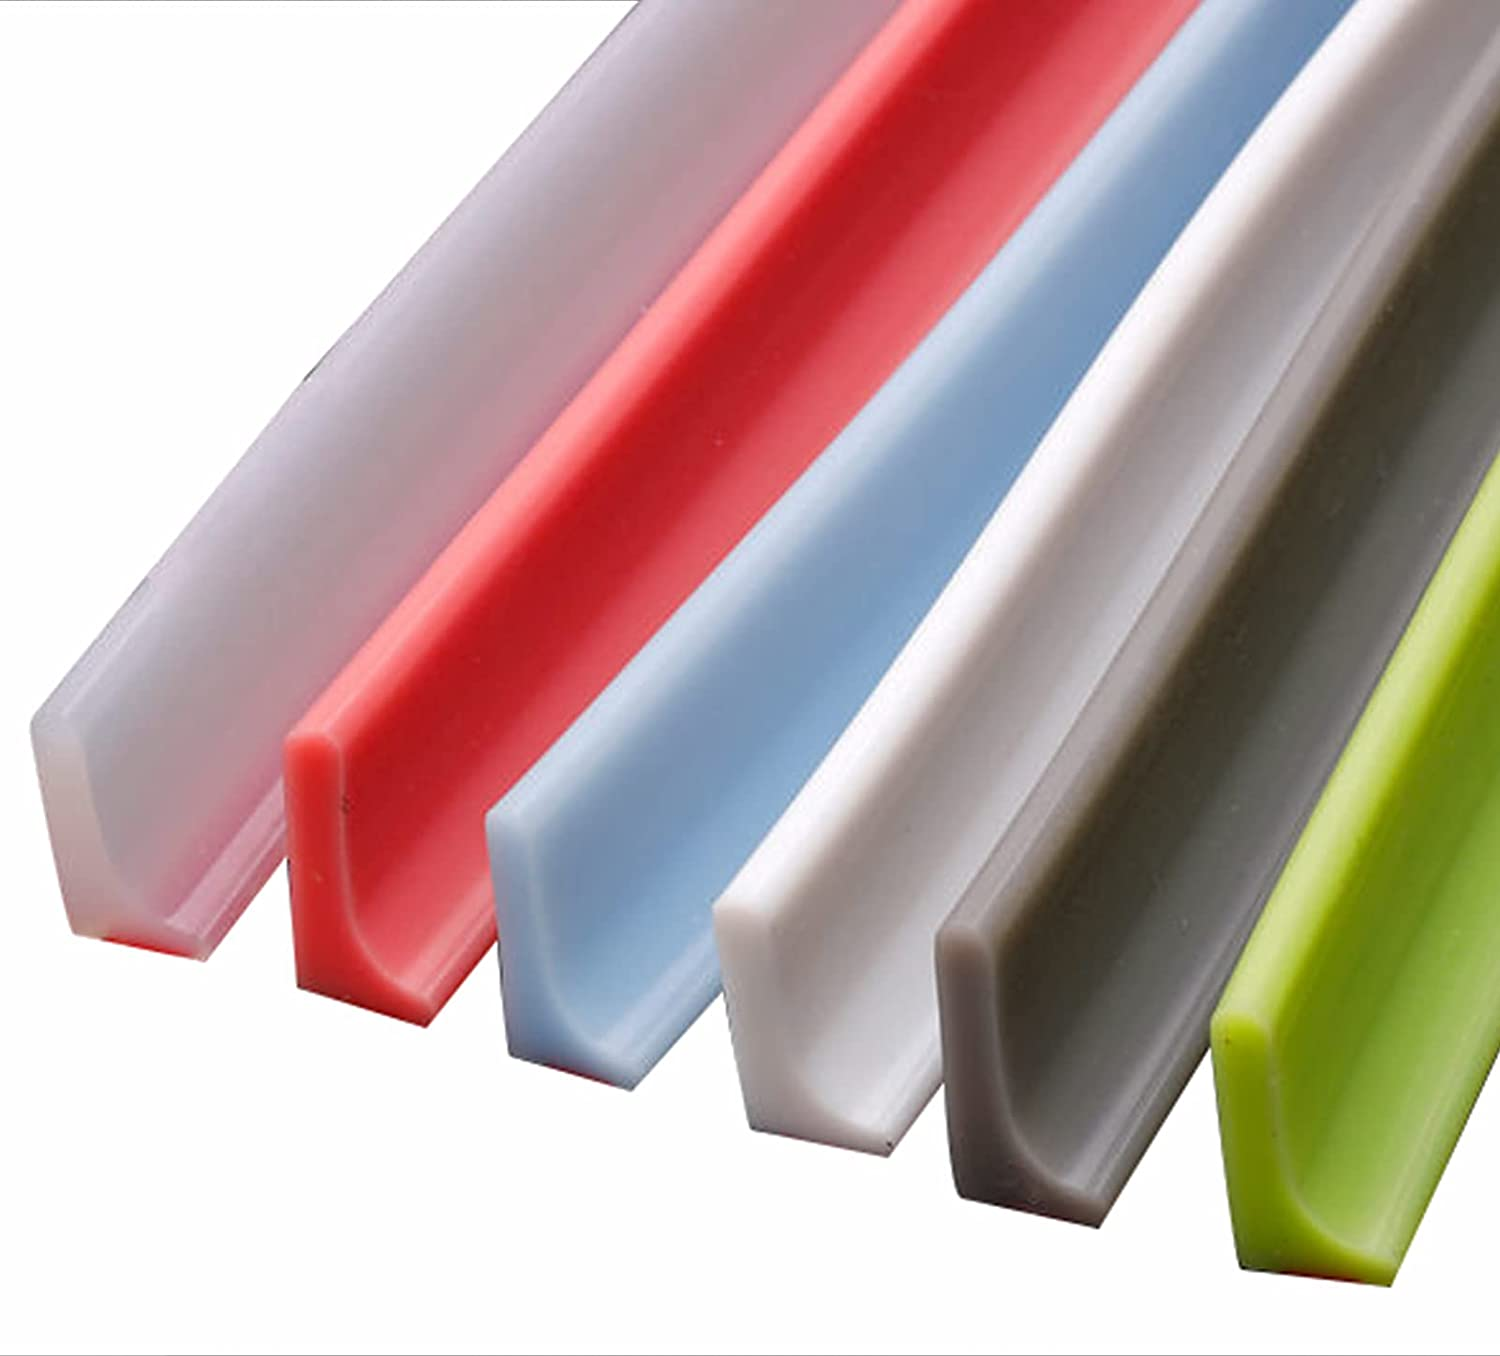 Xanperex Collapsible Silicon Flood sold out Barrier Self-Adhesive Portland Mall Shower